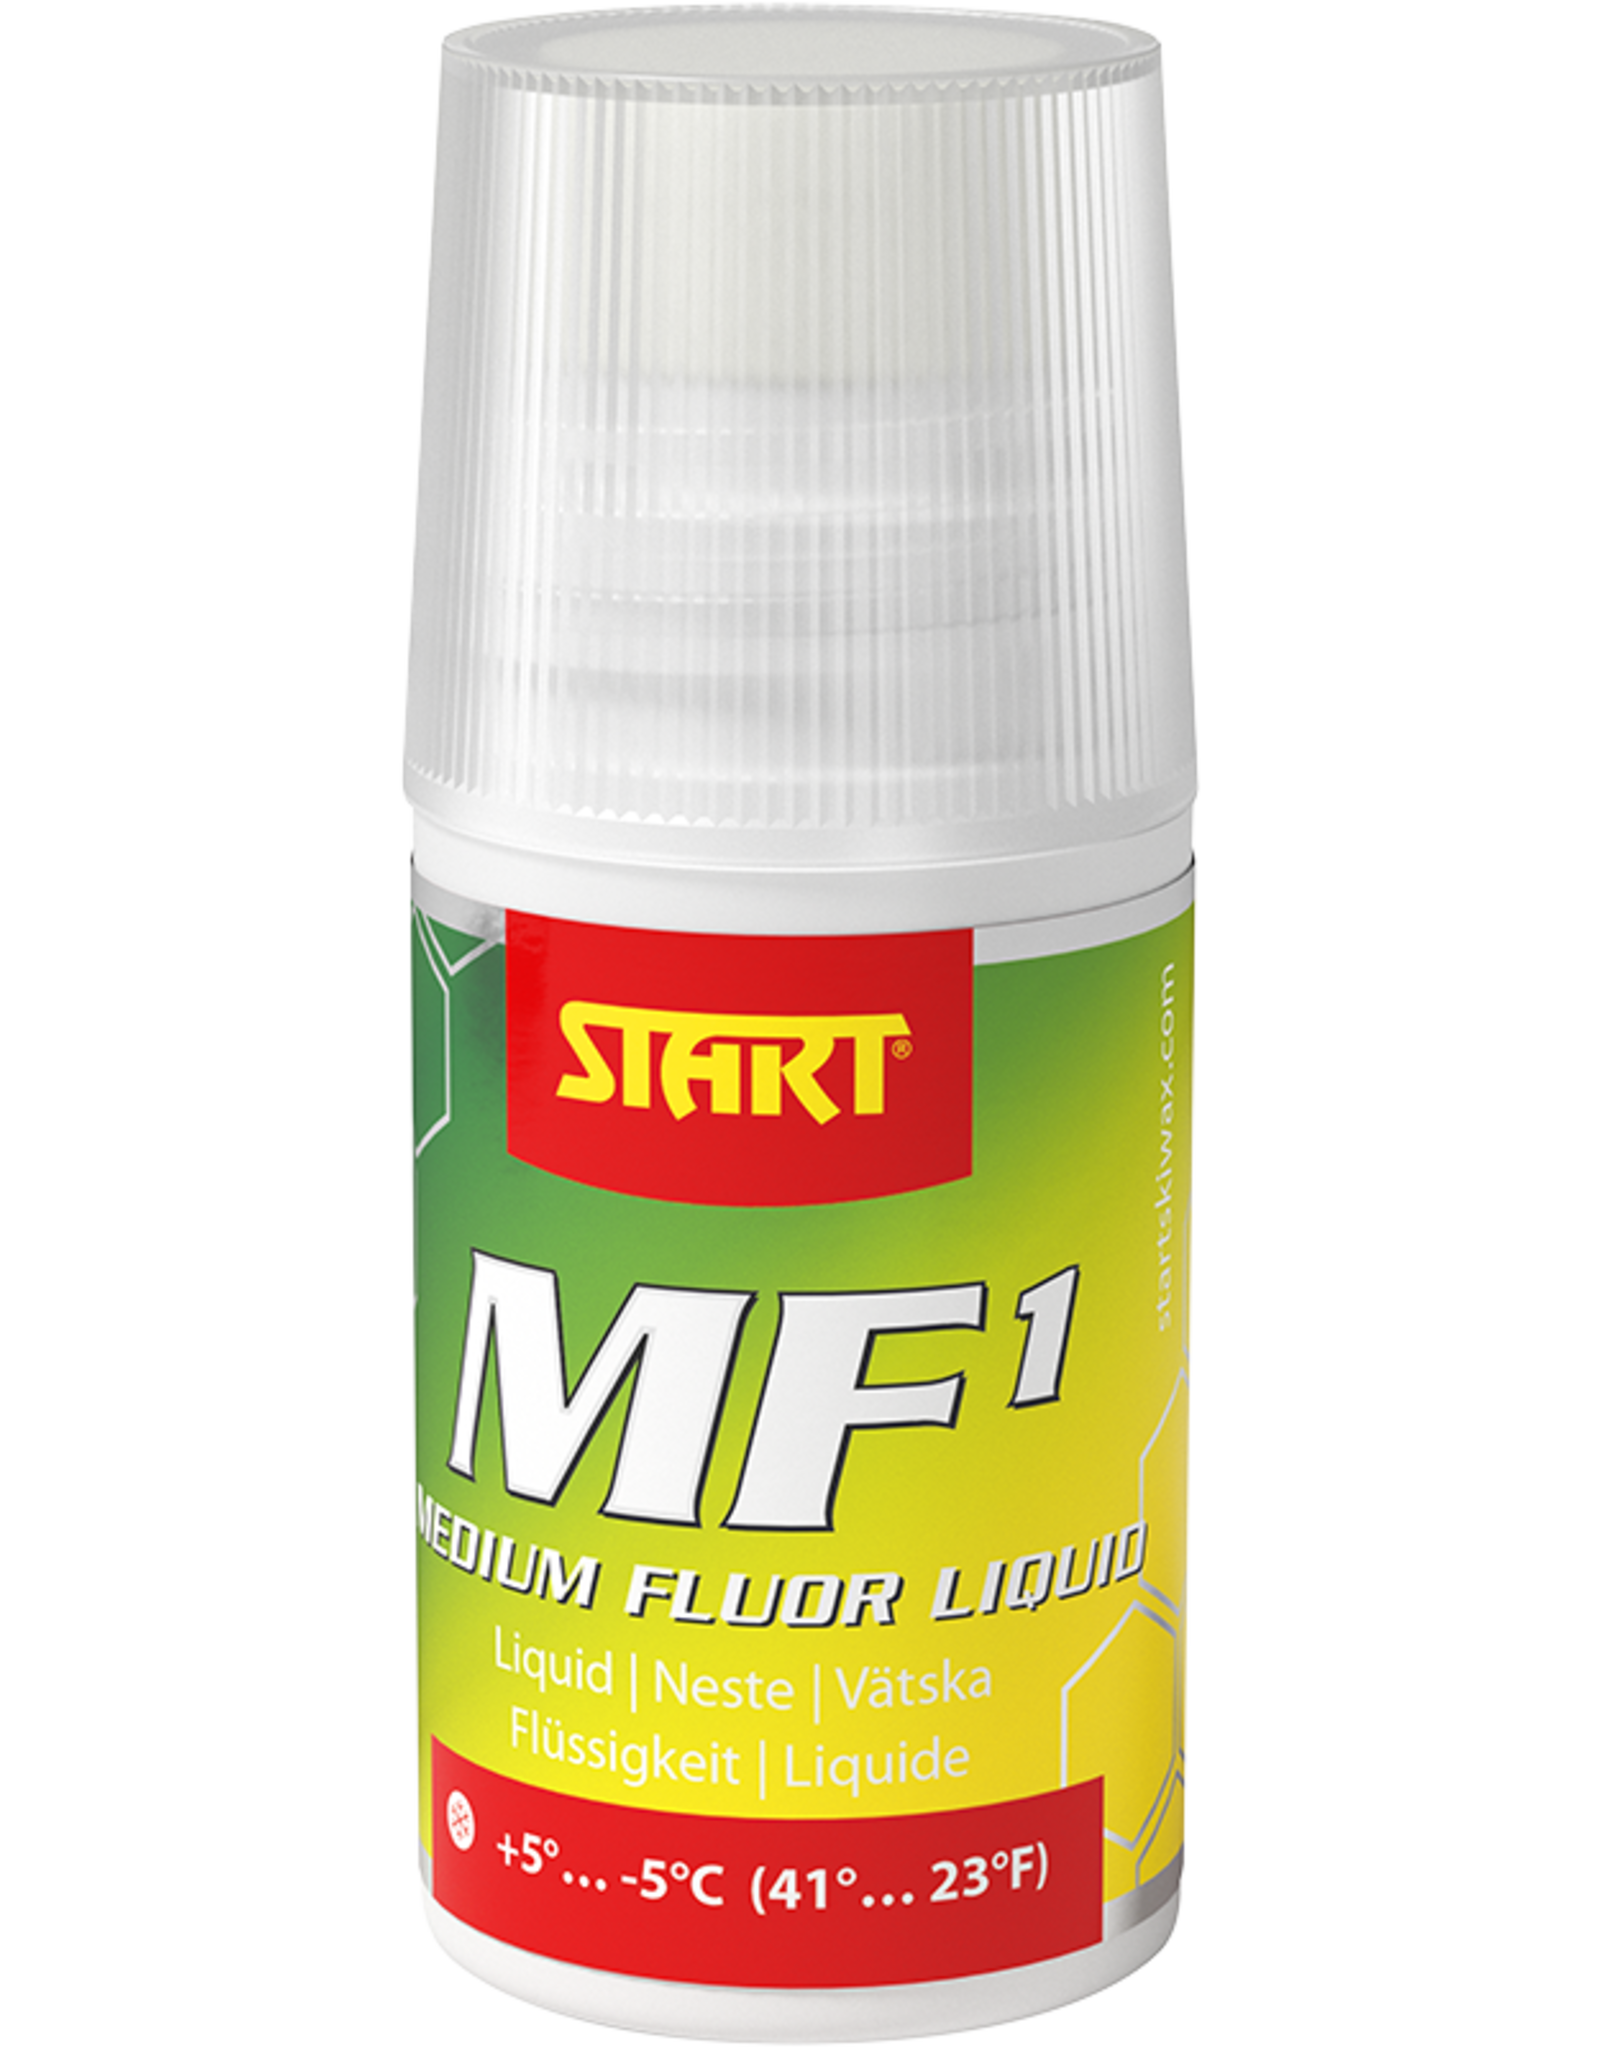 Start Start MF1 Medium Fluor Liquid